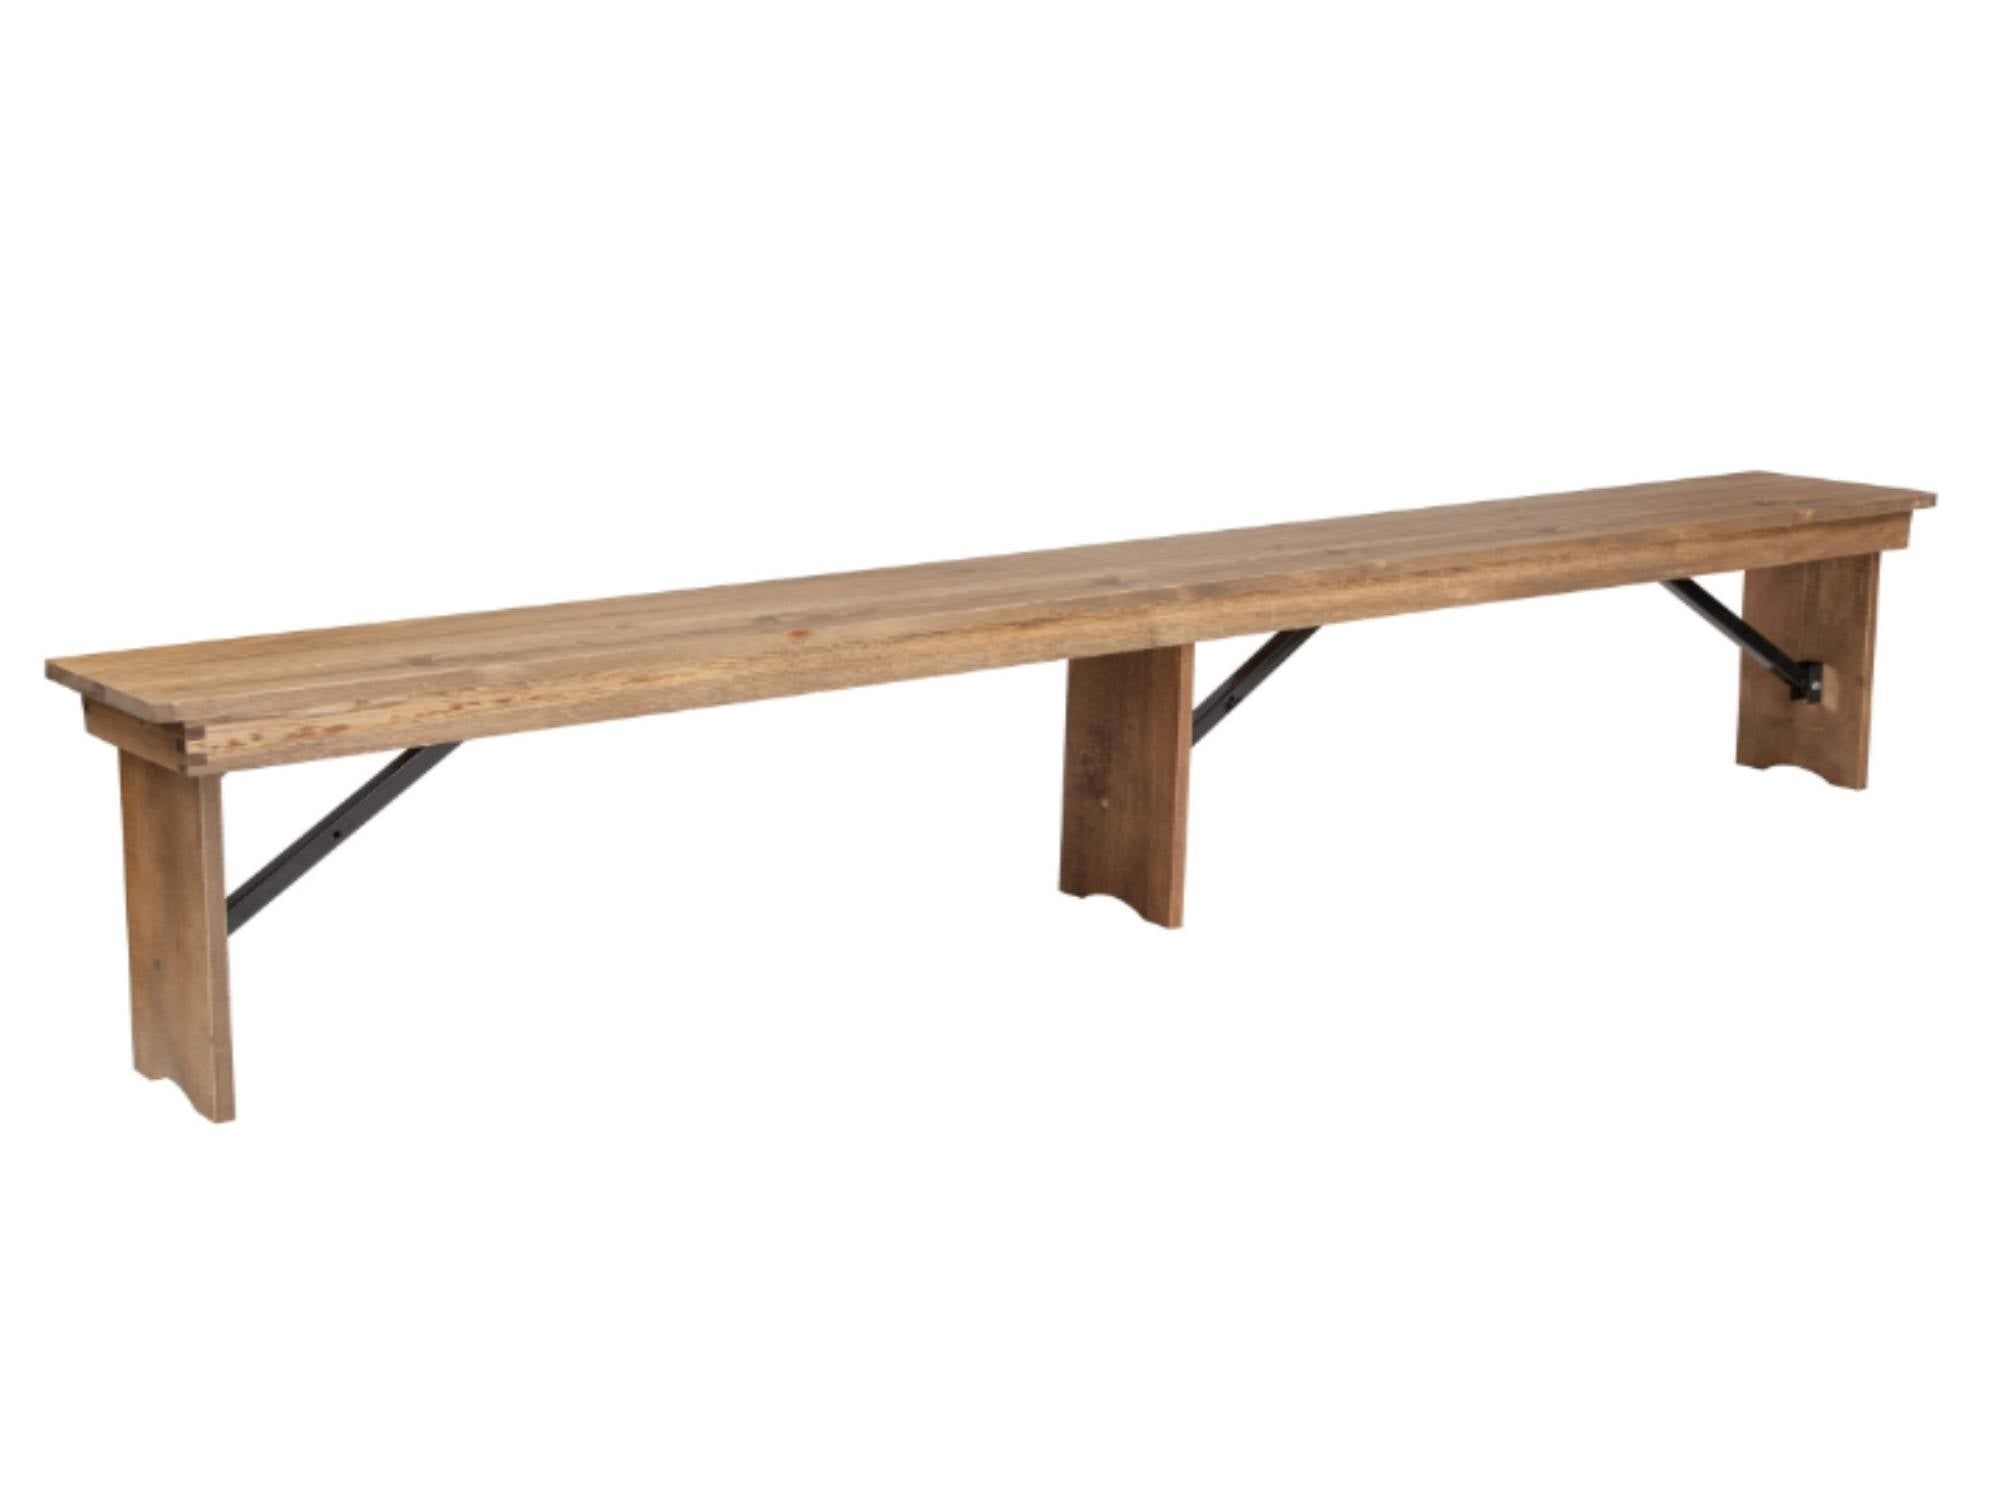 PINE WOOD FARM BENCH